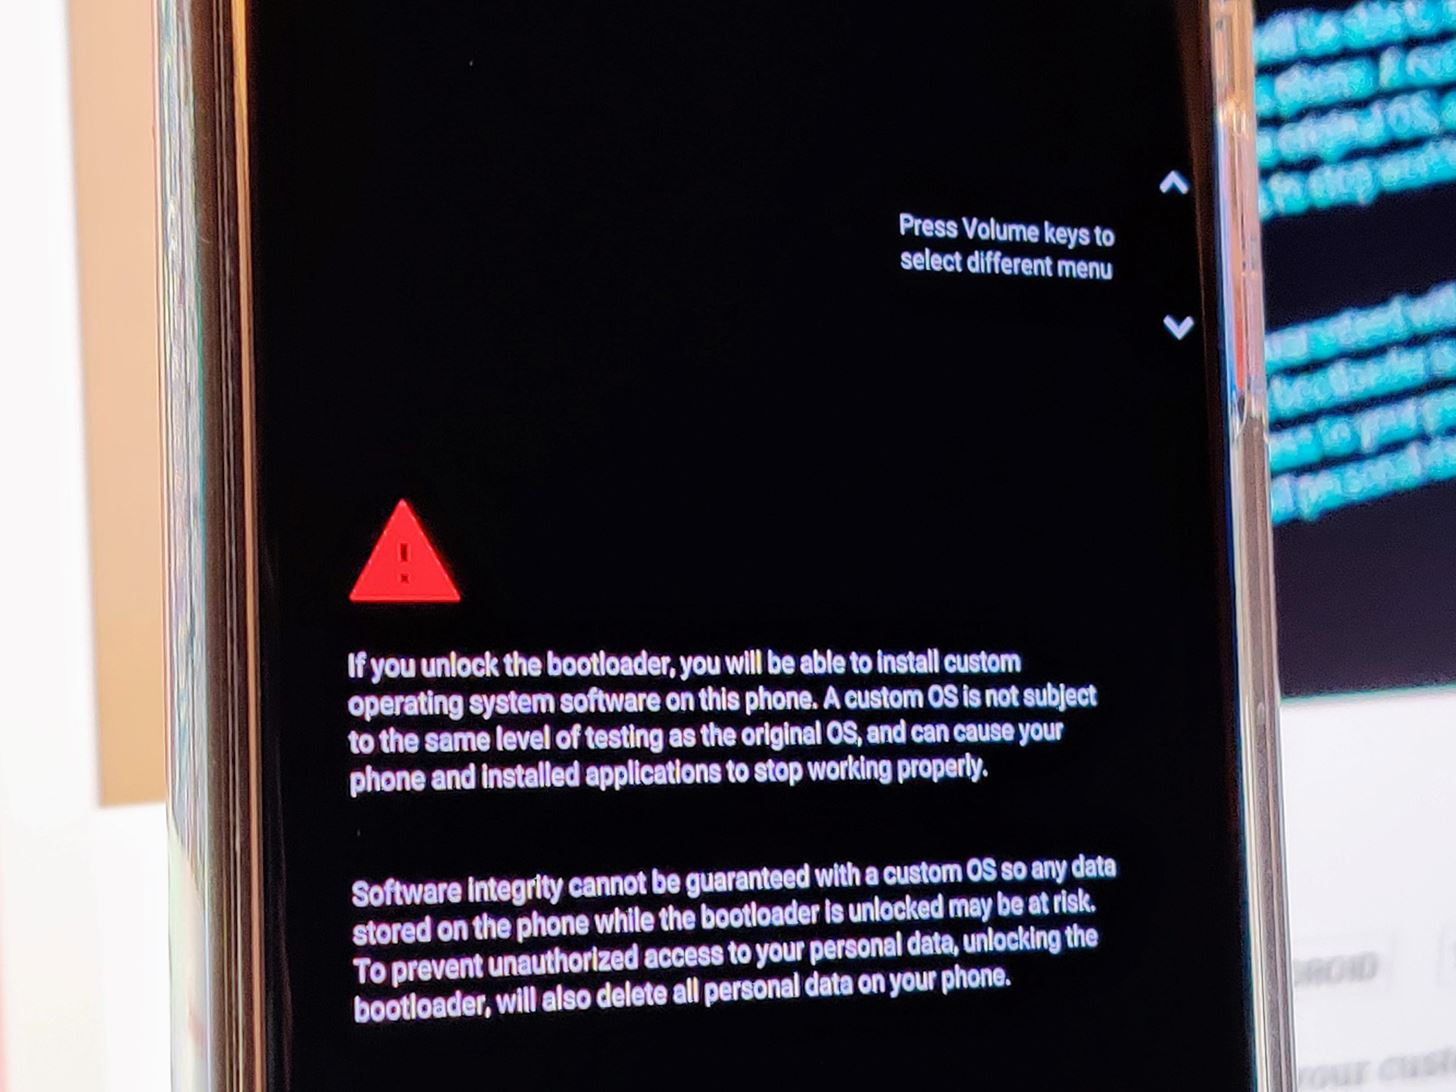 How to unlock the bootloader on your Pixel 4